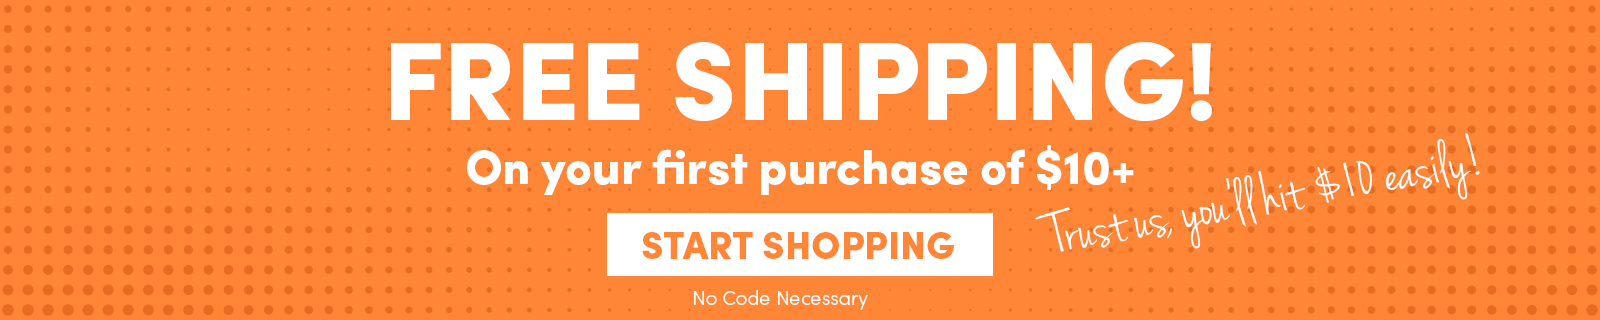 Free Shipping on Your First Order Over $10